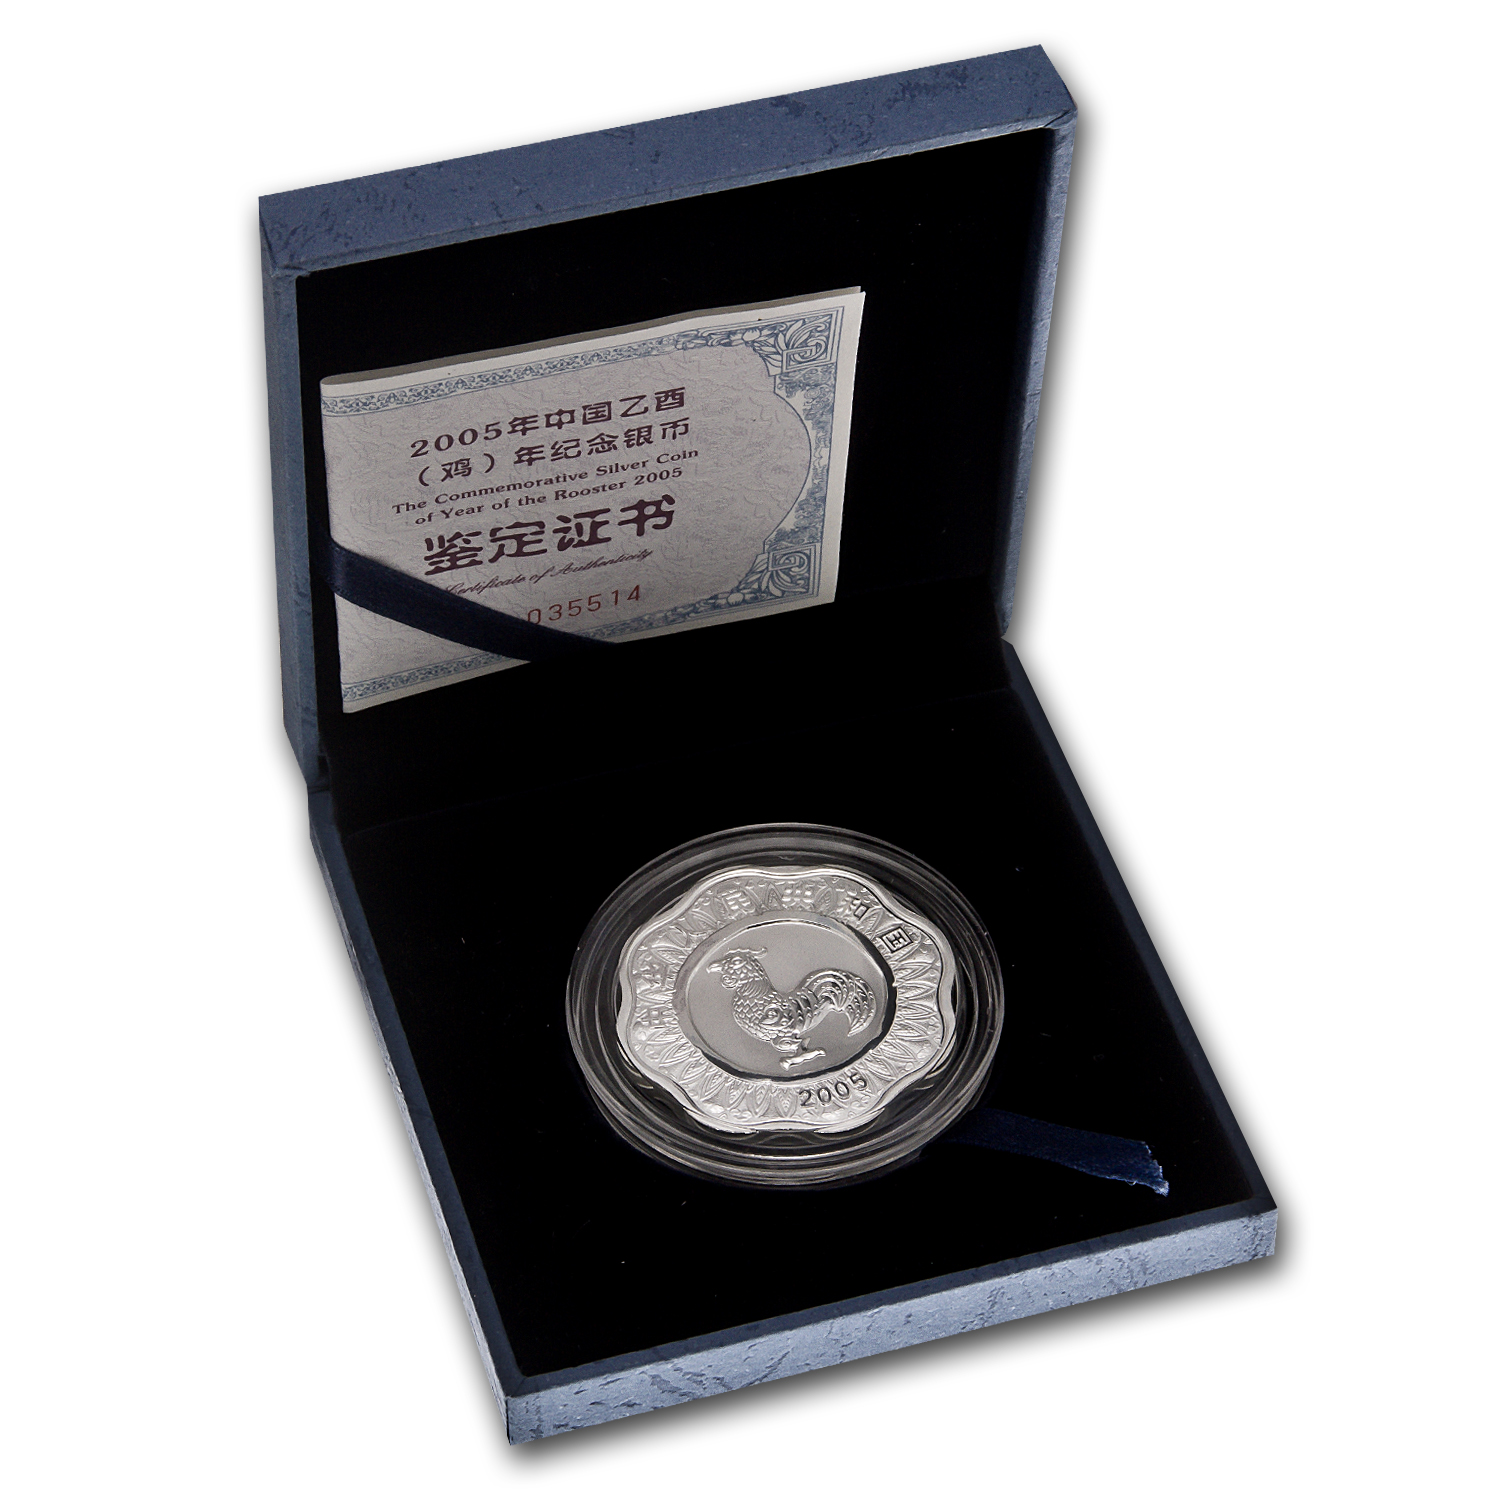 2005 China 1 oz Silver Flower Year of the Rooster (w/Box & COA)